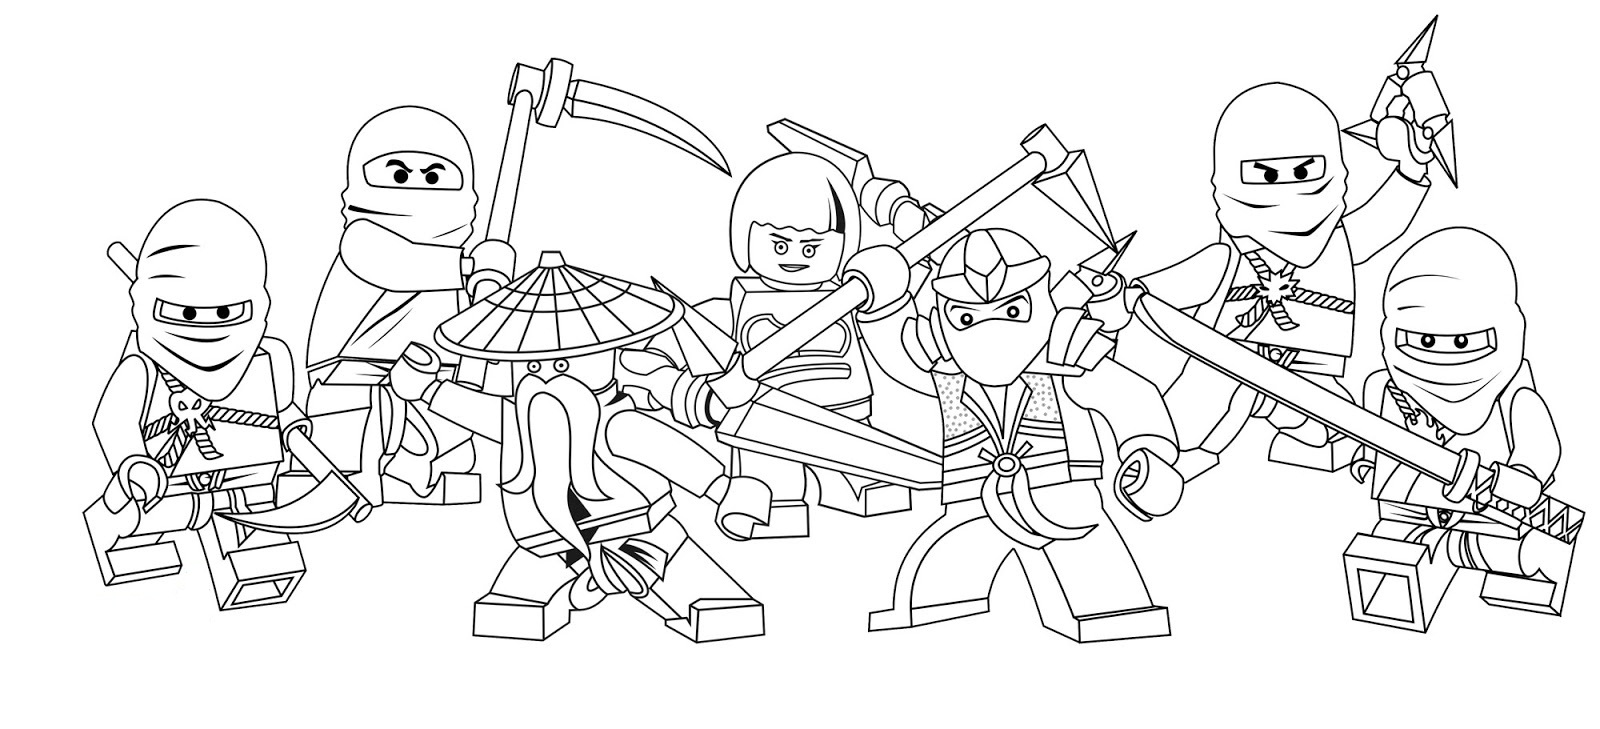 ninjago coloring pages printable - Ninjago Pictures To Color